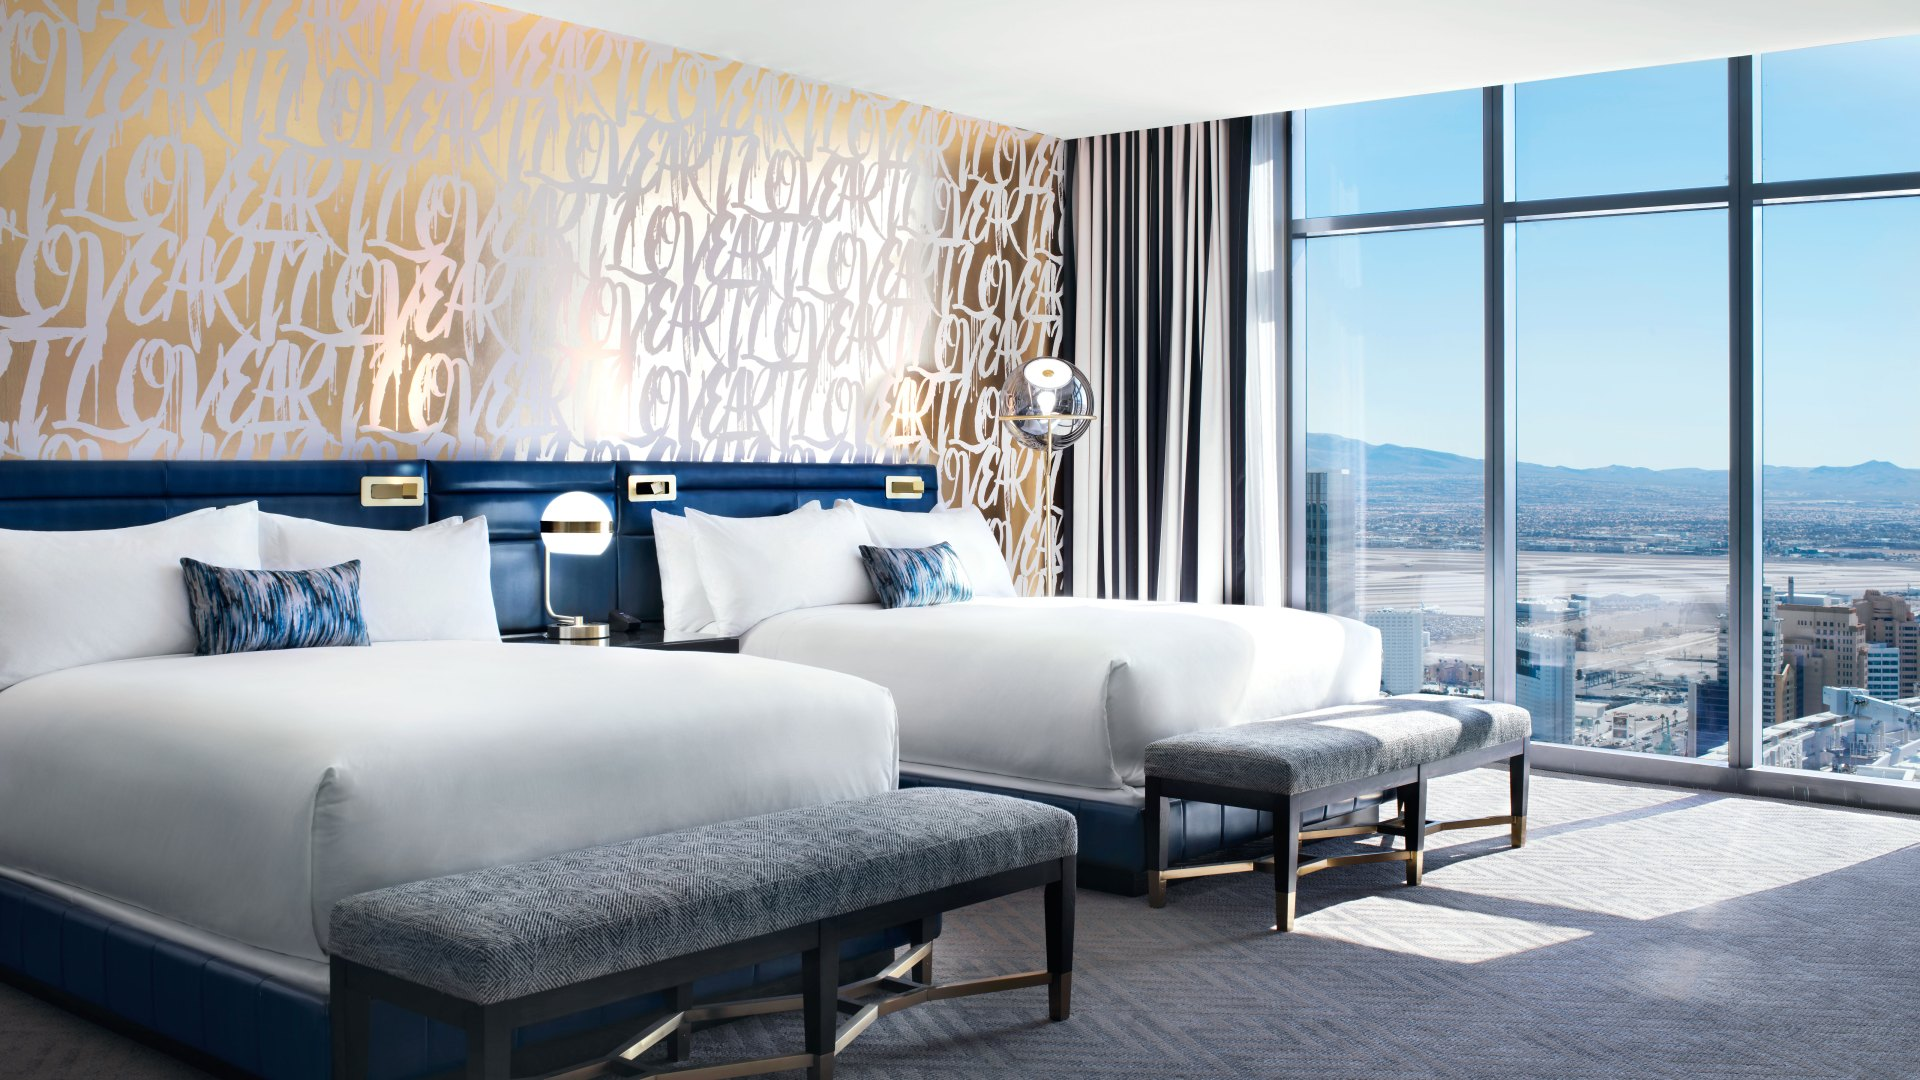 Las Vegas luxury hotel rooms and suites  The Cosmopolitan